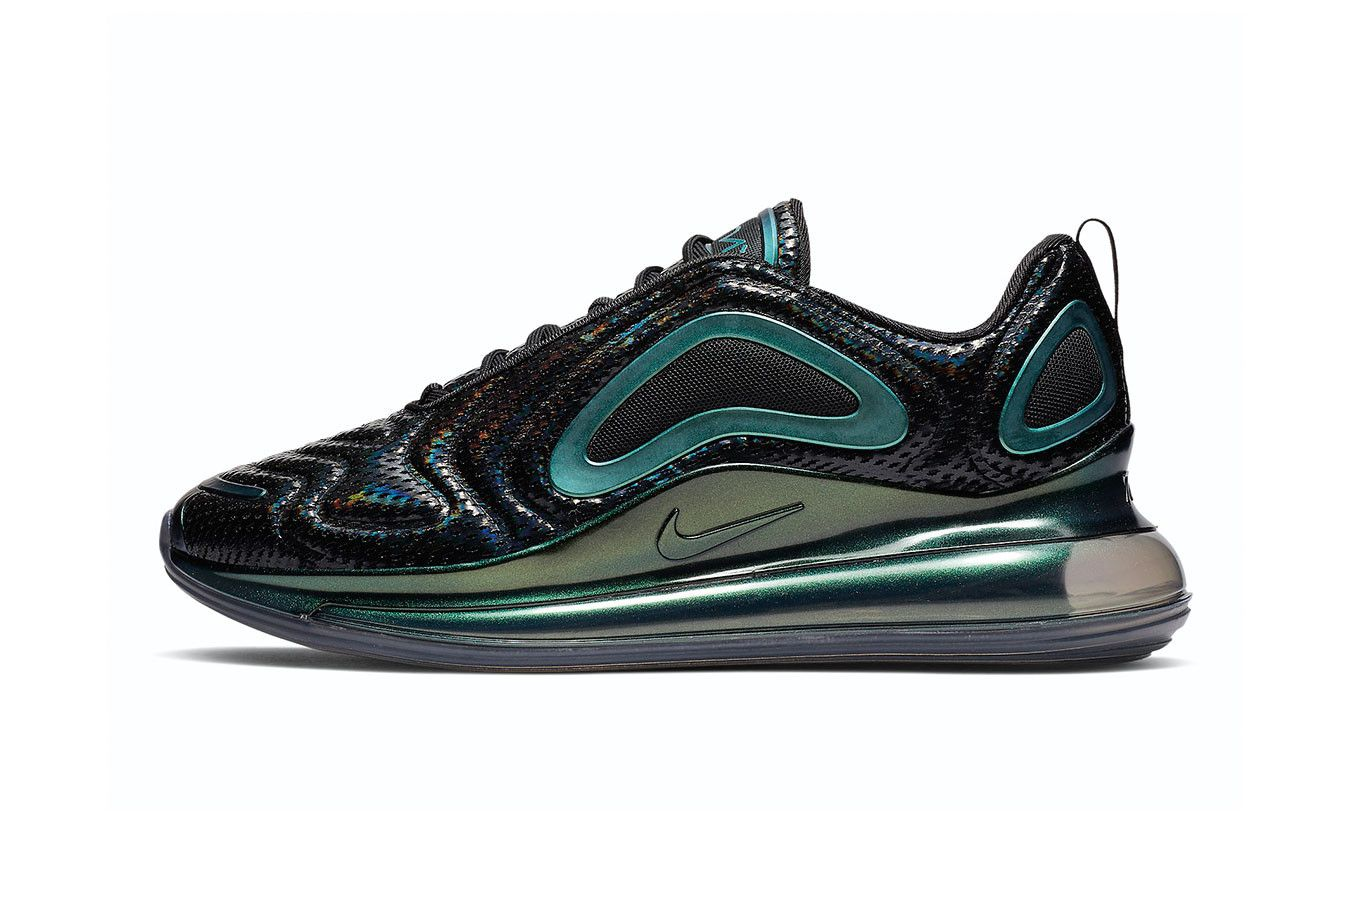 e058b8fb70 Nike Air Max 720 Iridescent Mesh Release Info Date sneaker black purple teal